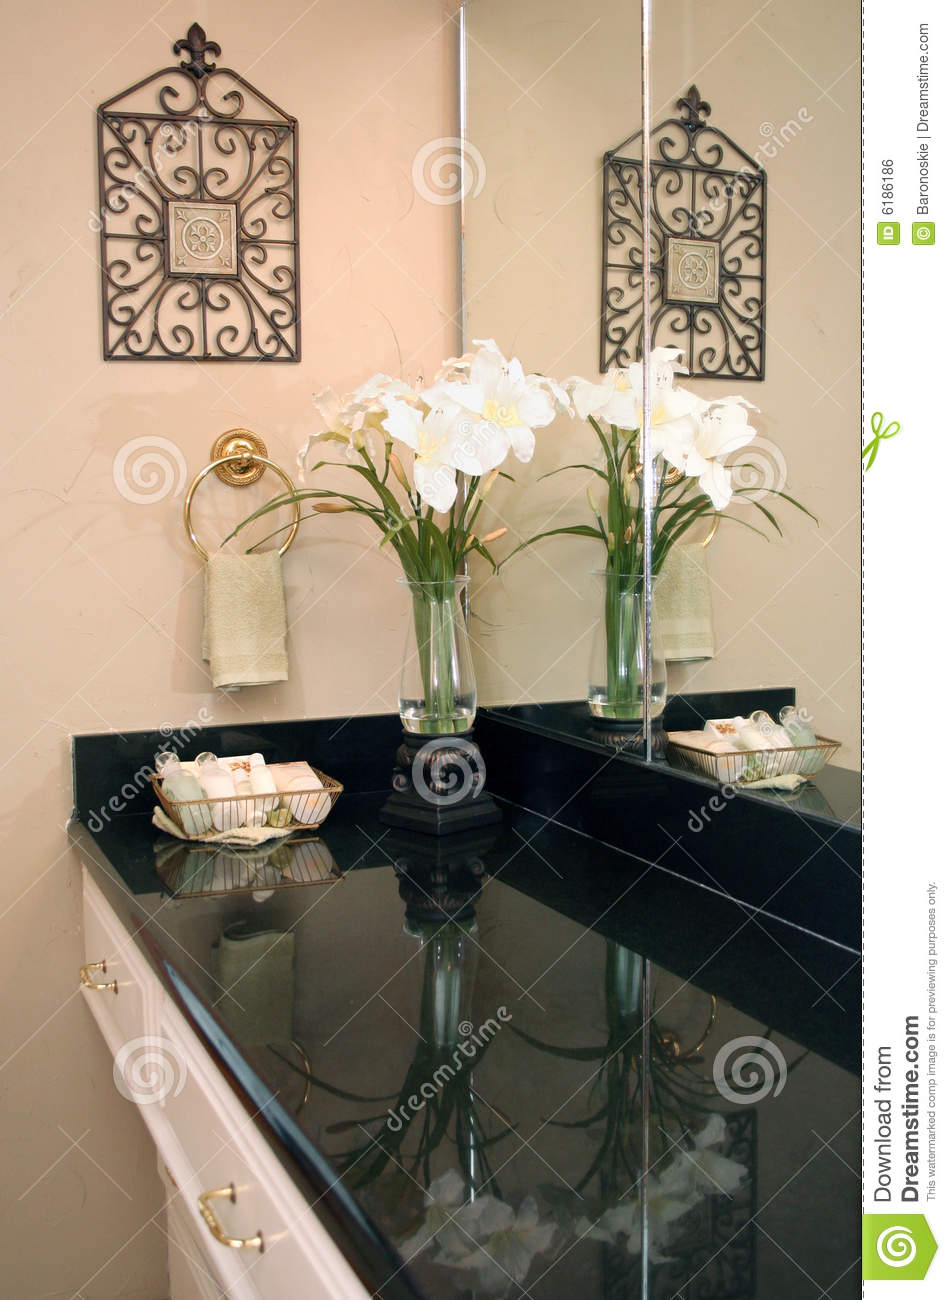 bathroom decor royalty free stock image - image: 6186186